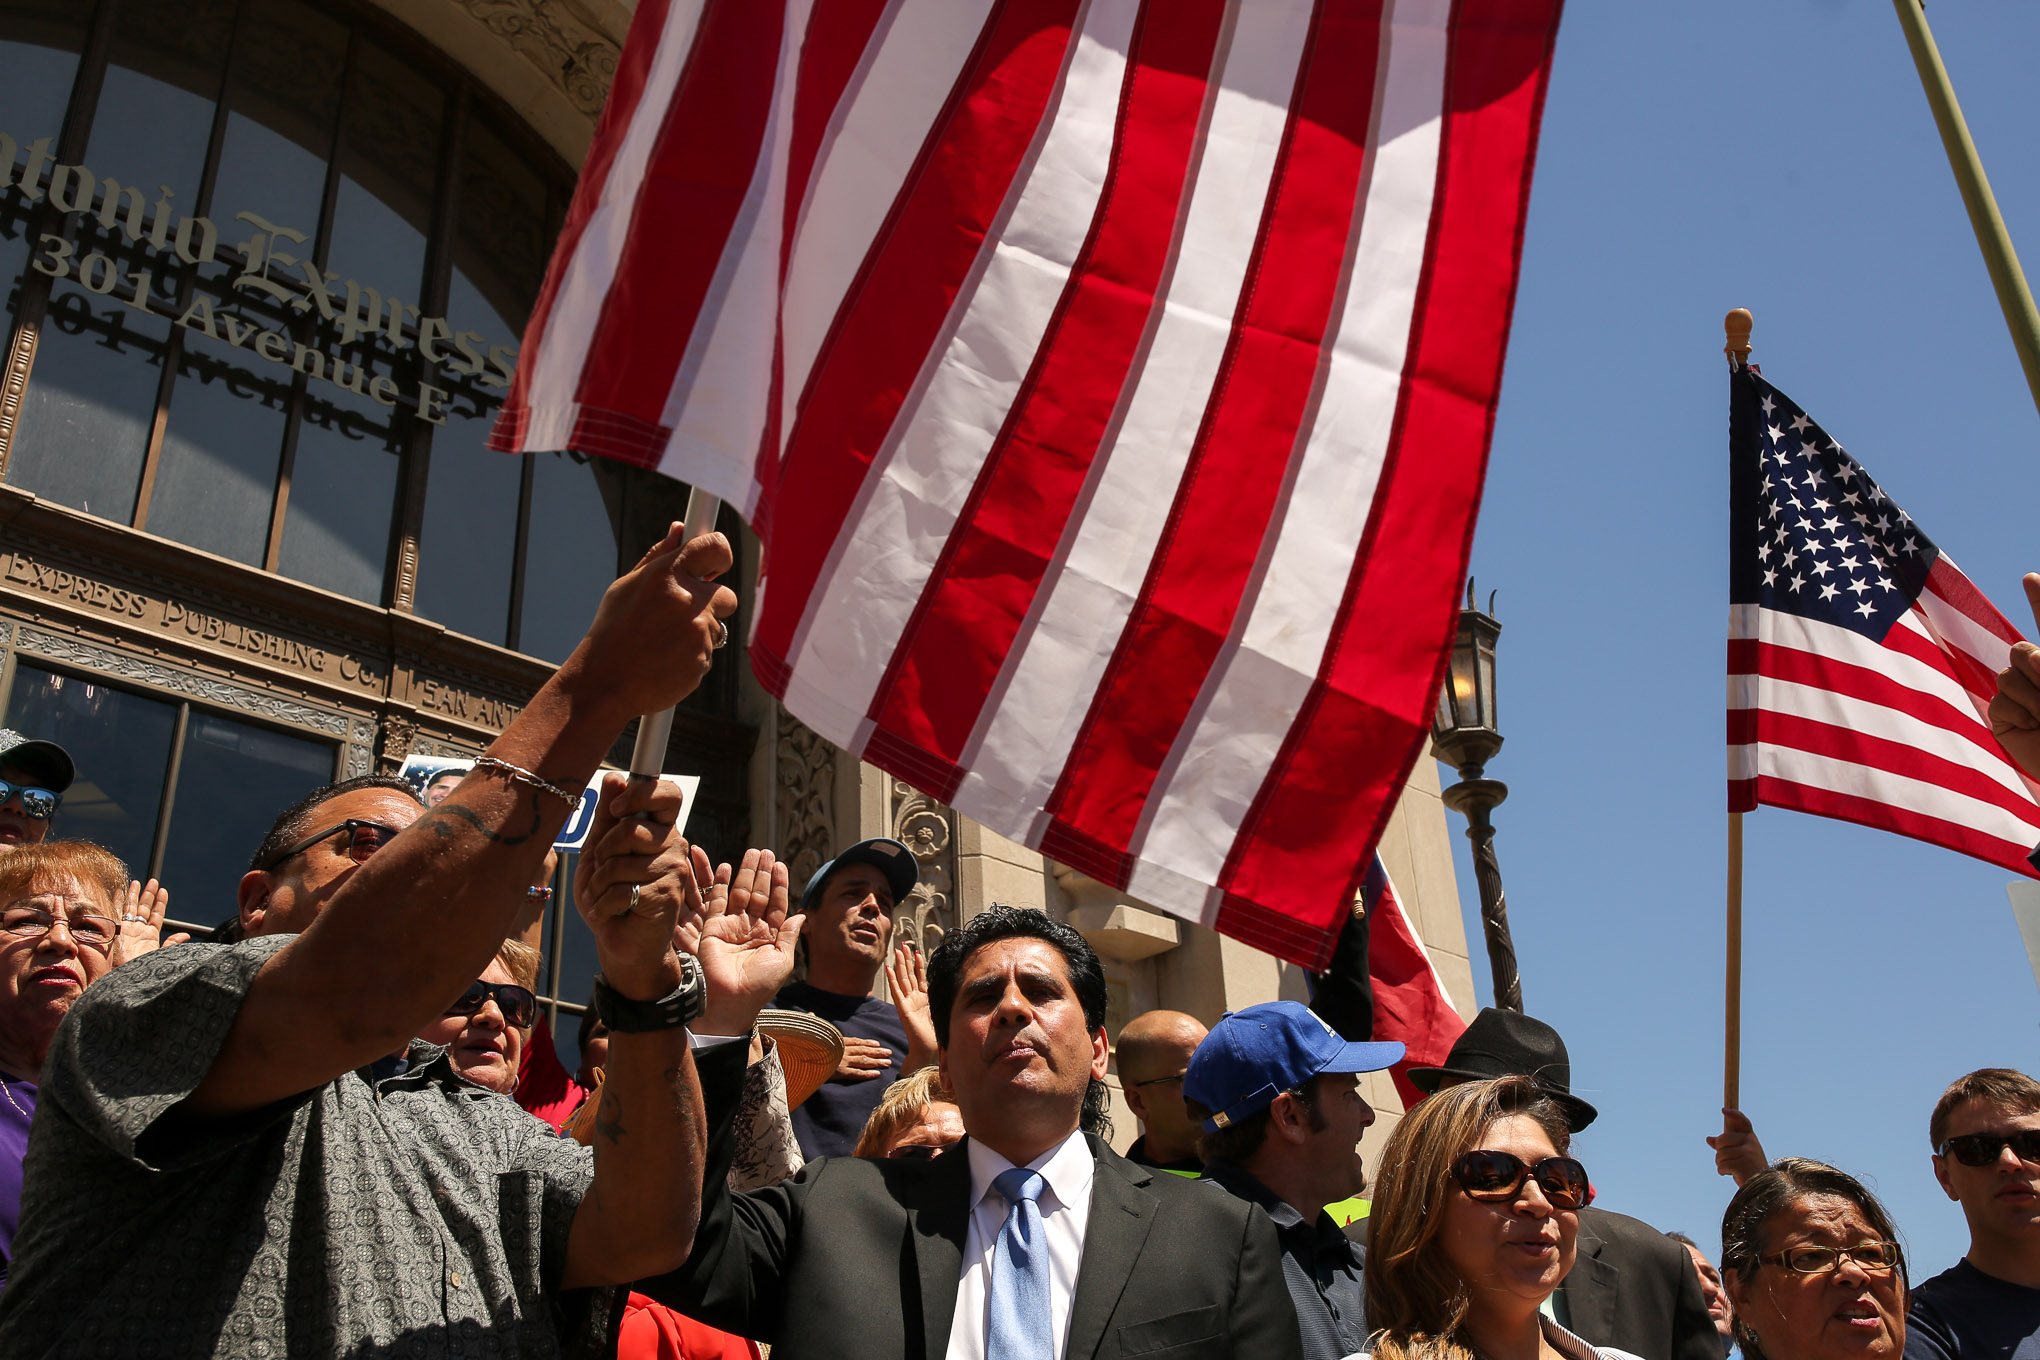 Manuel Medina along with his supporters recite the United States Pledge of Allegiance on the steps of the San Antonio Express News.